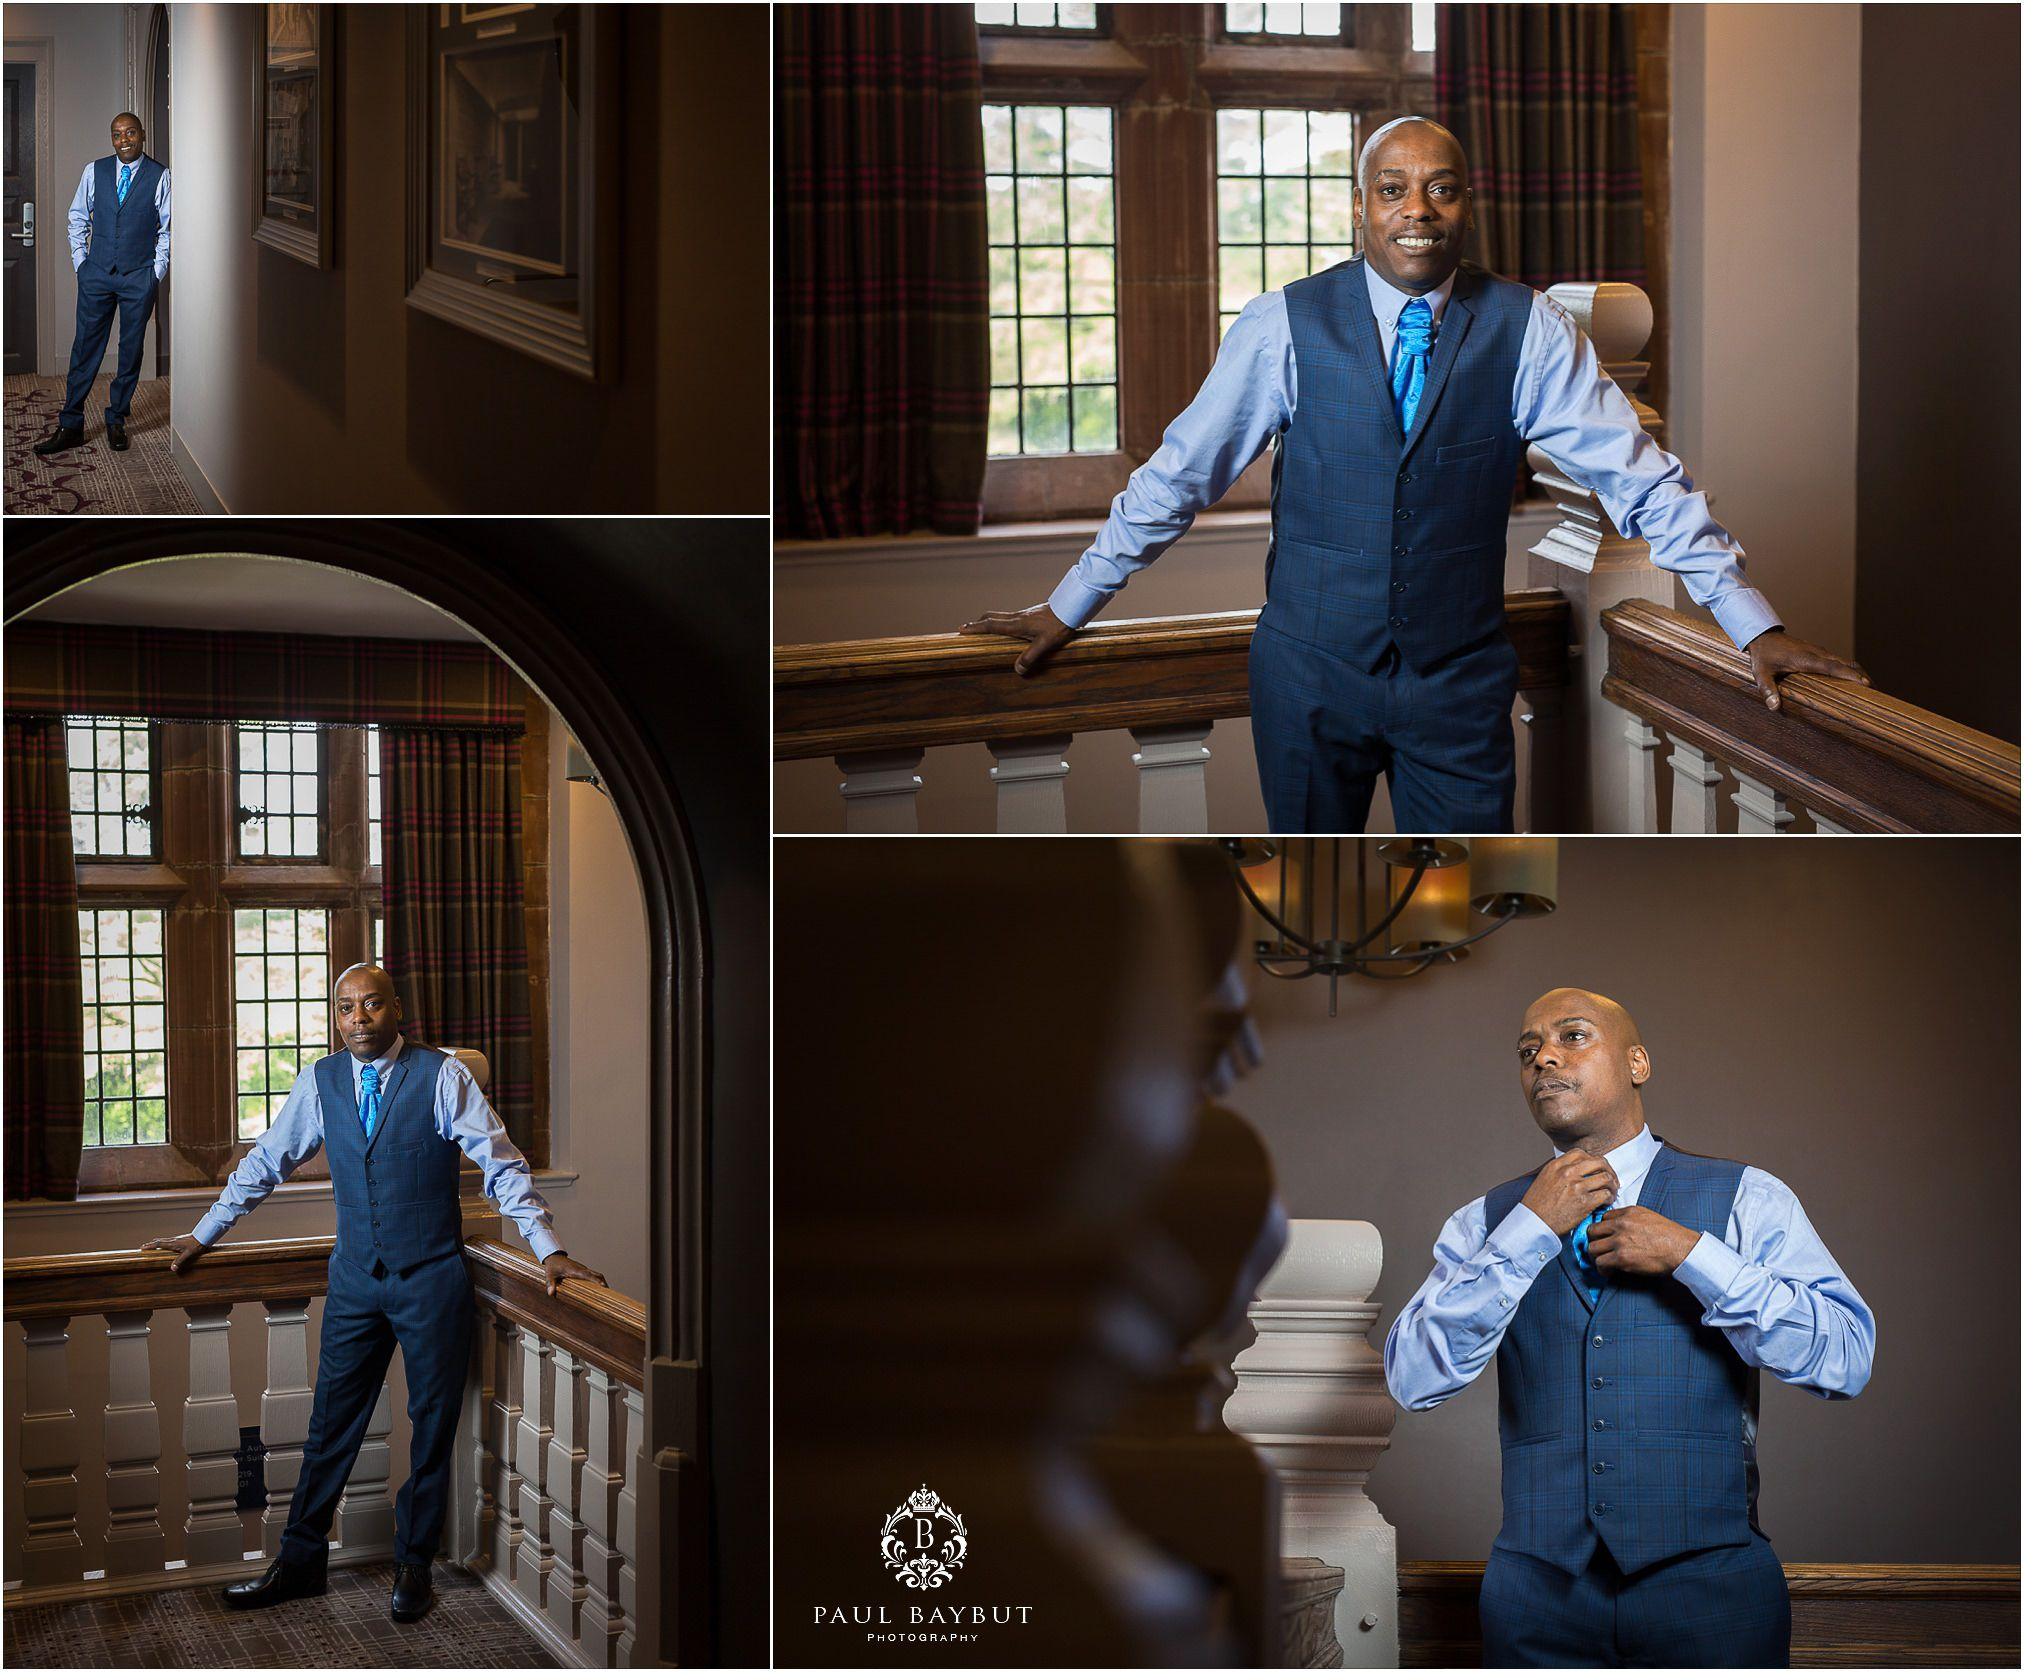 Groom in his suit poses for wedding photographs at Abbey House in Cumbria